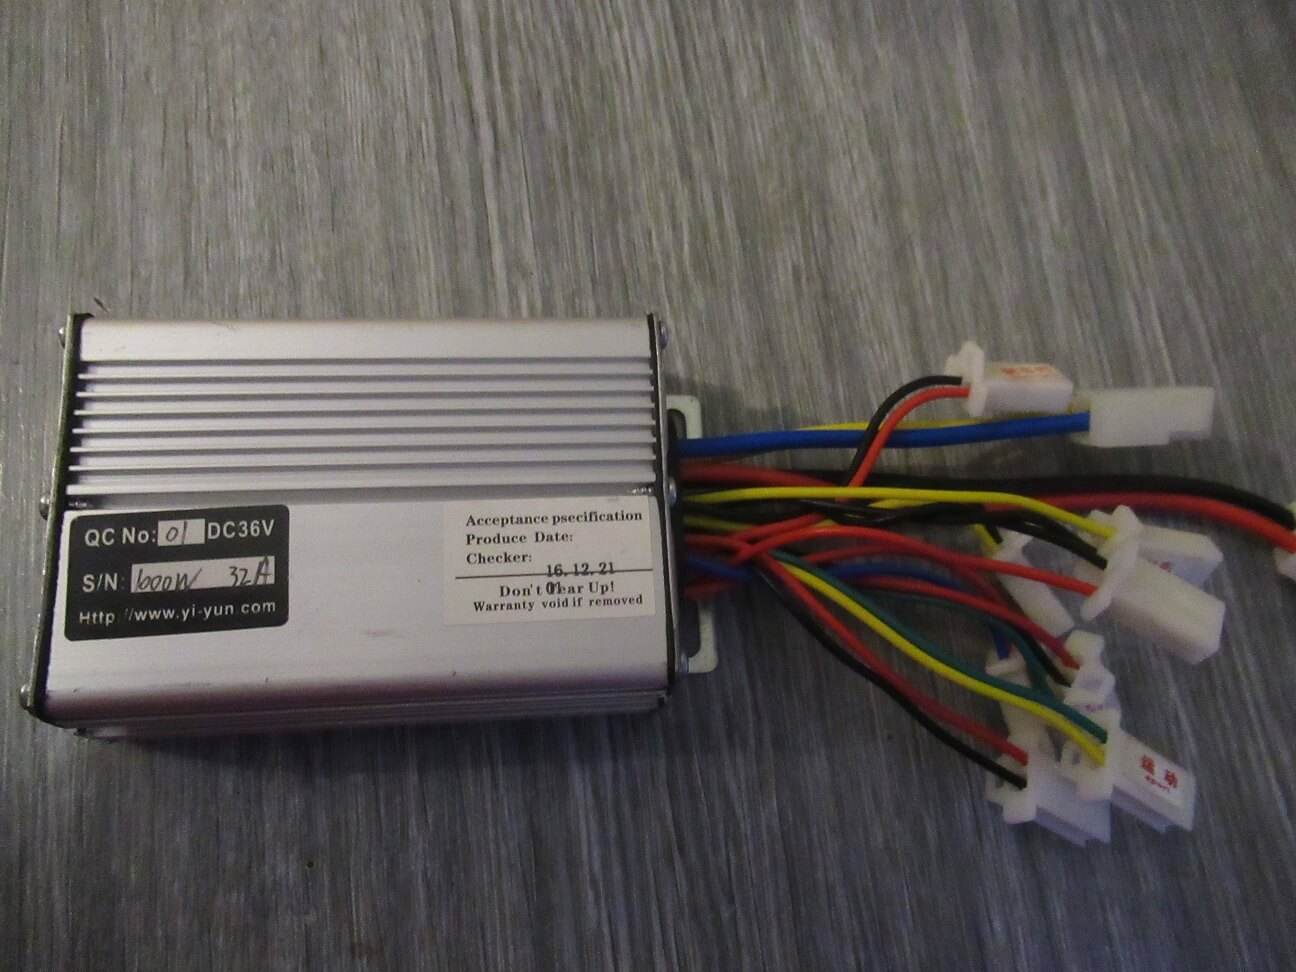 usefulldata com 1000w yiyun 36v 48v dc brush motor controller for electric quad scooter city 3 wheel scooter toy scooter wherever you want high performance and have a eletric brush motor controller is only for